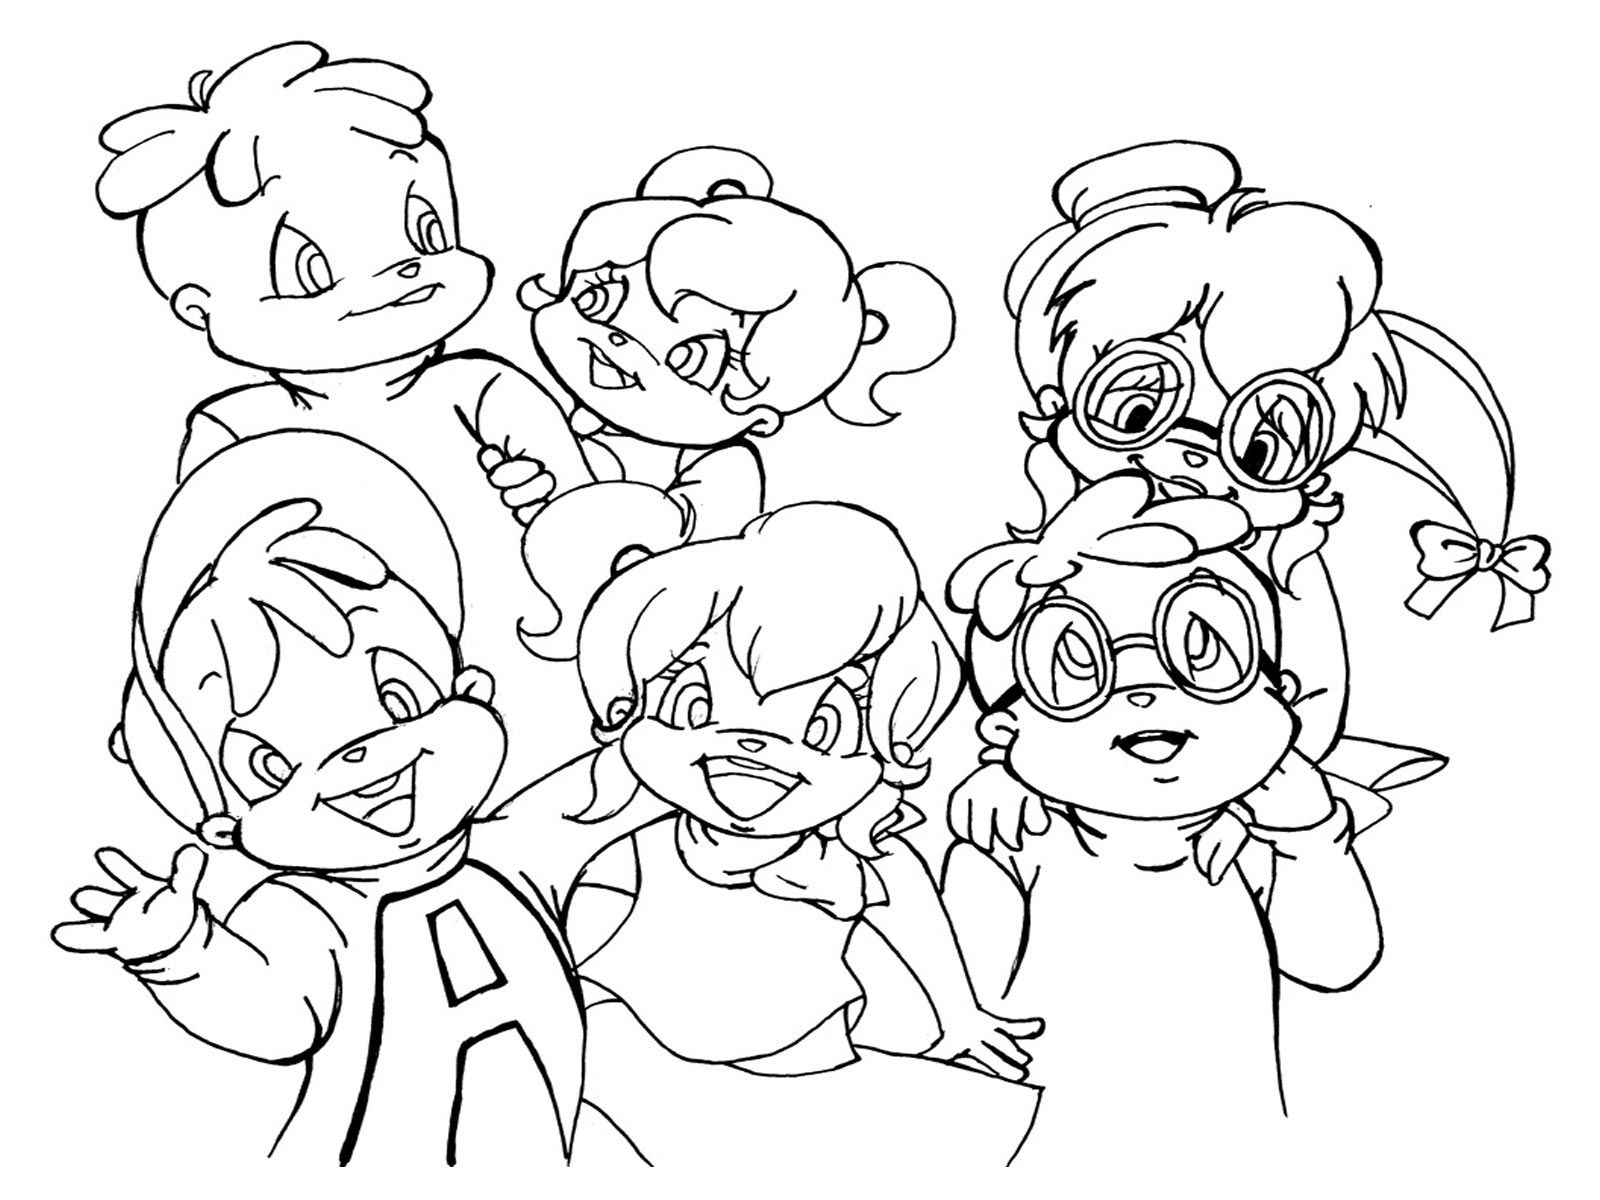 Alvin And The Chipmunks Chipwrecked Coloring Pages ...